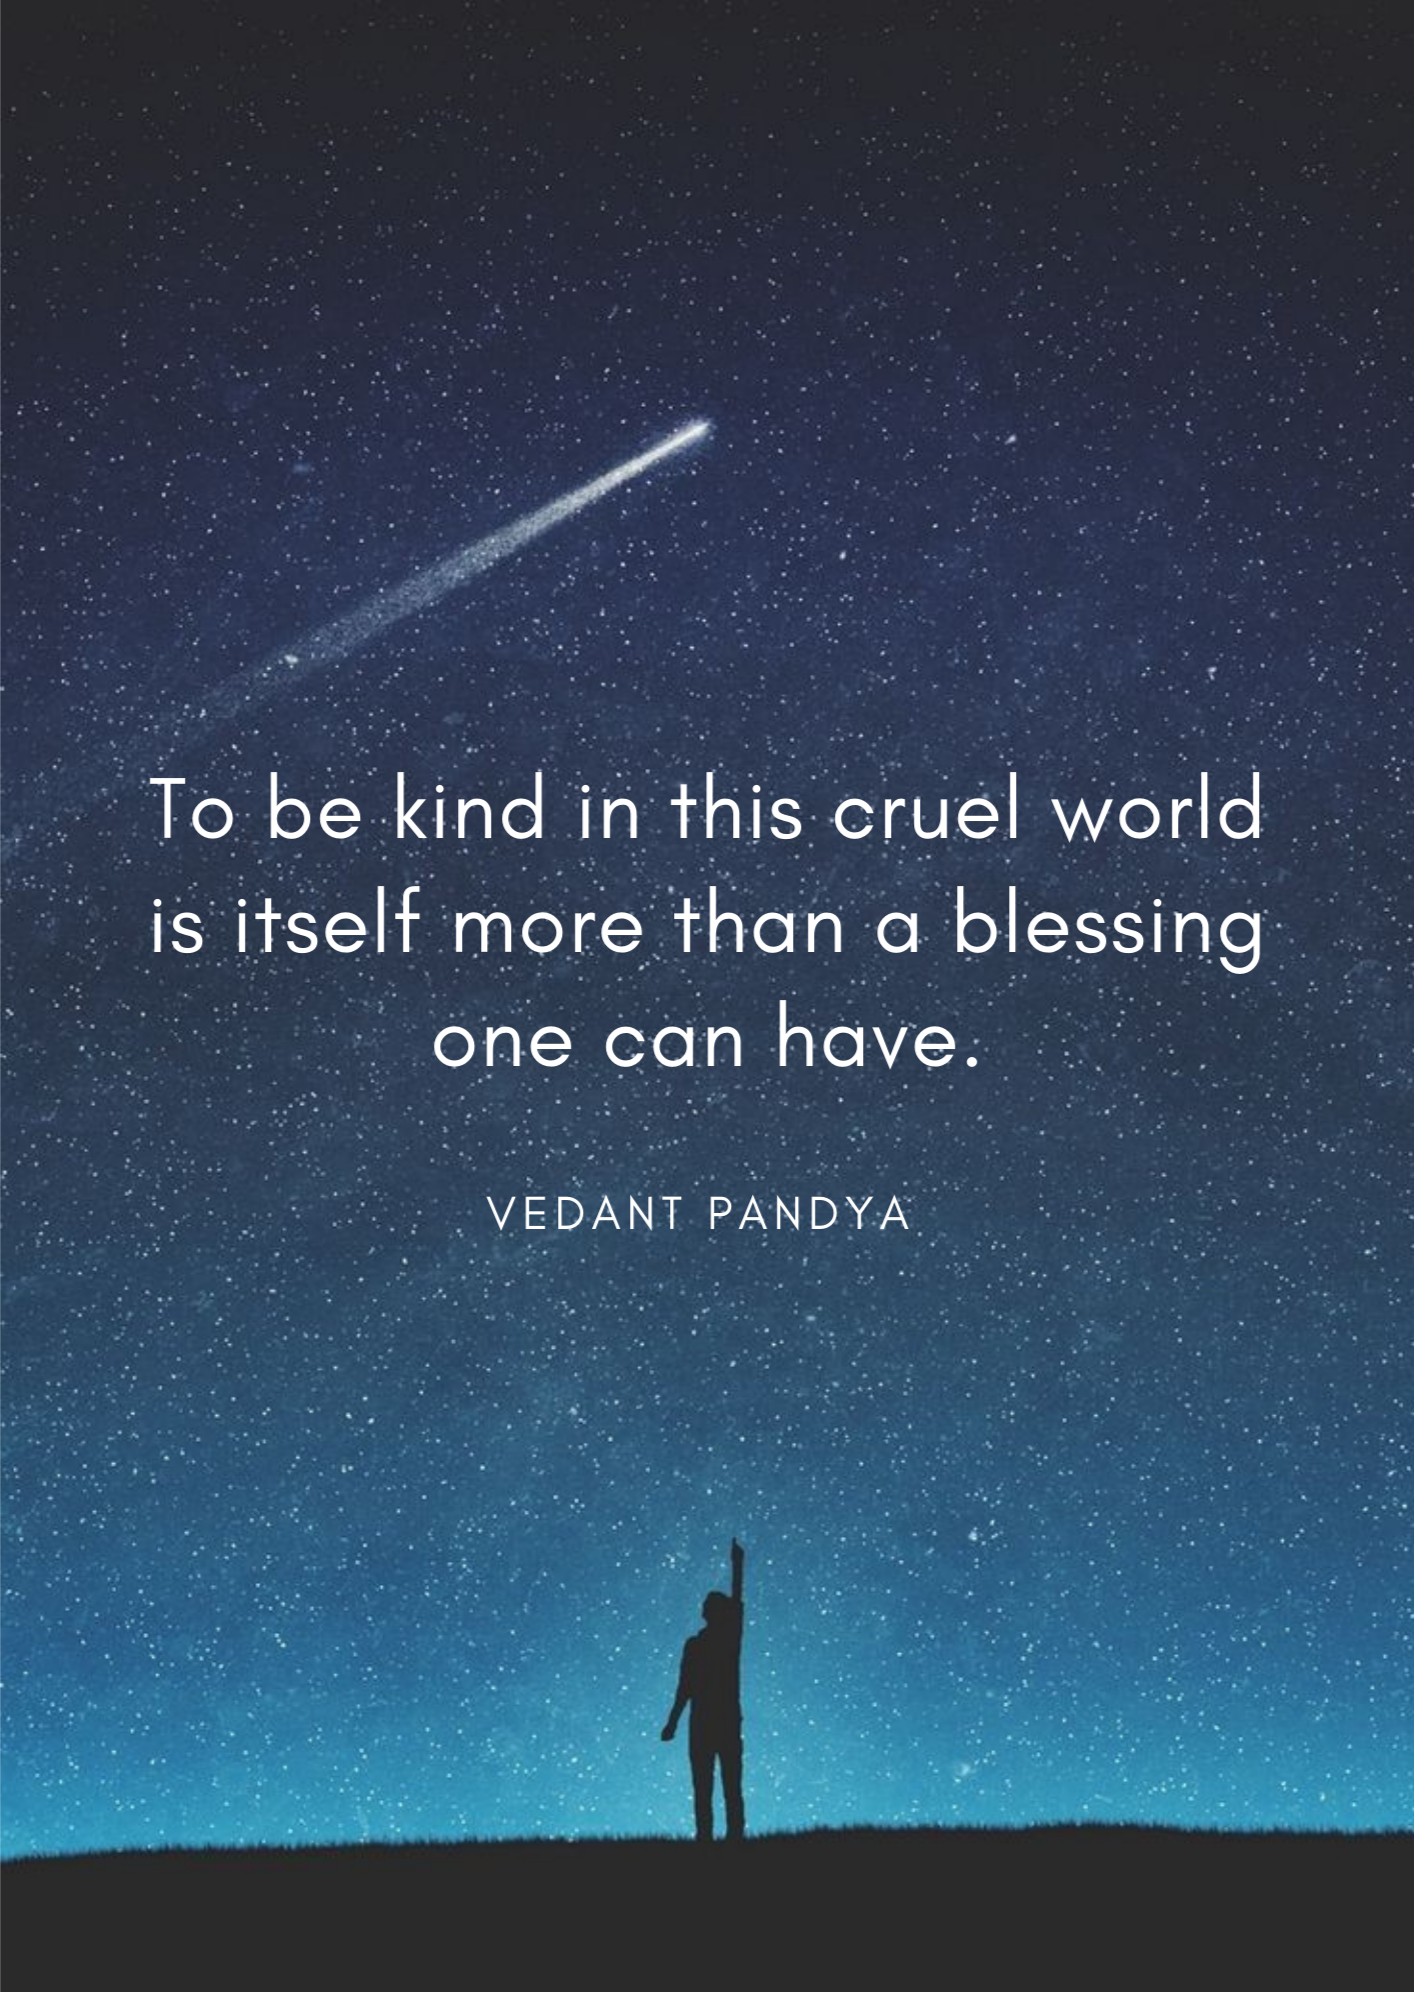 To be kind in this cruel world is itself more than a blessing one can have. -Vedant Pandya [1414×1992]